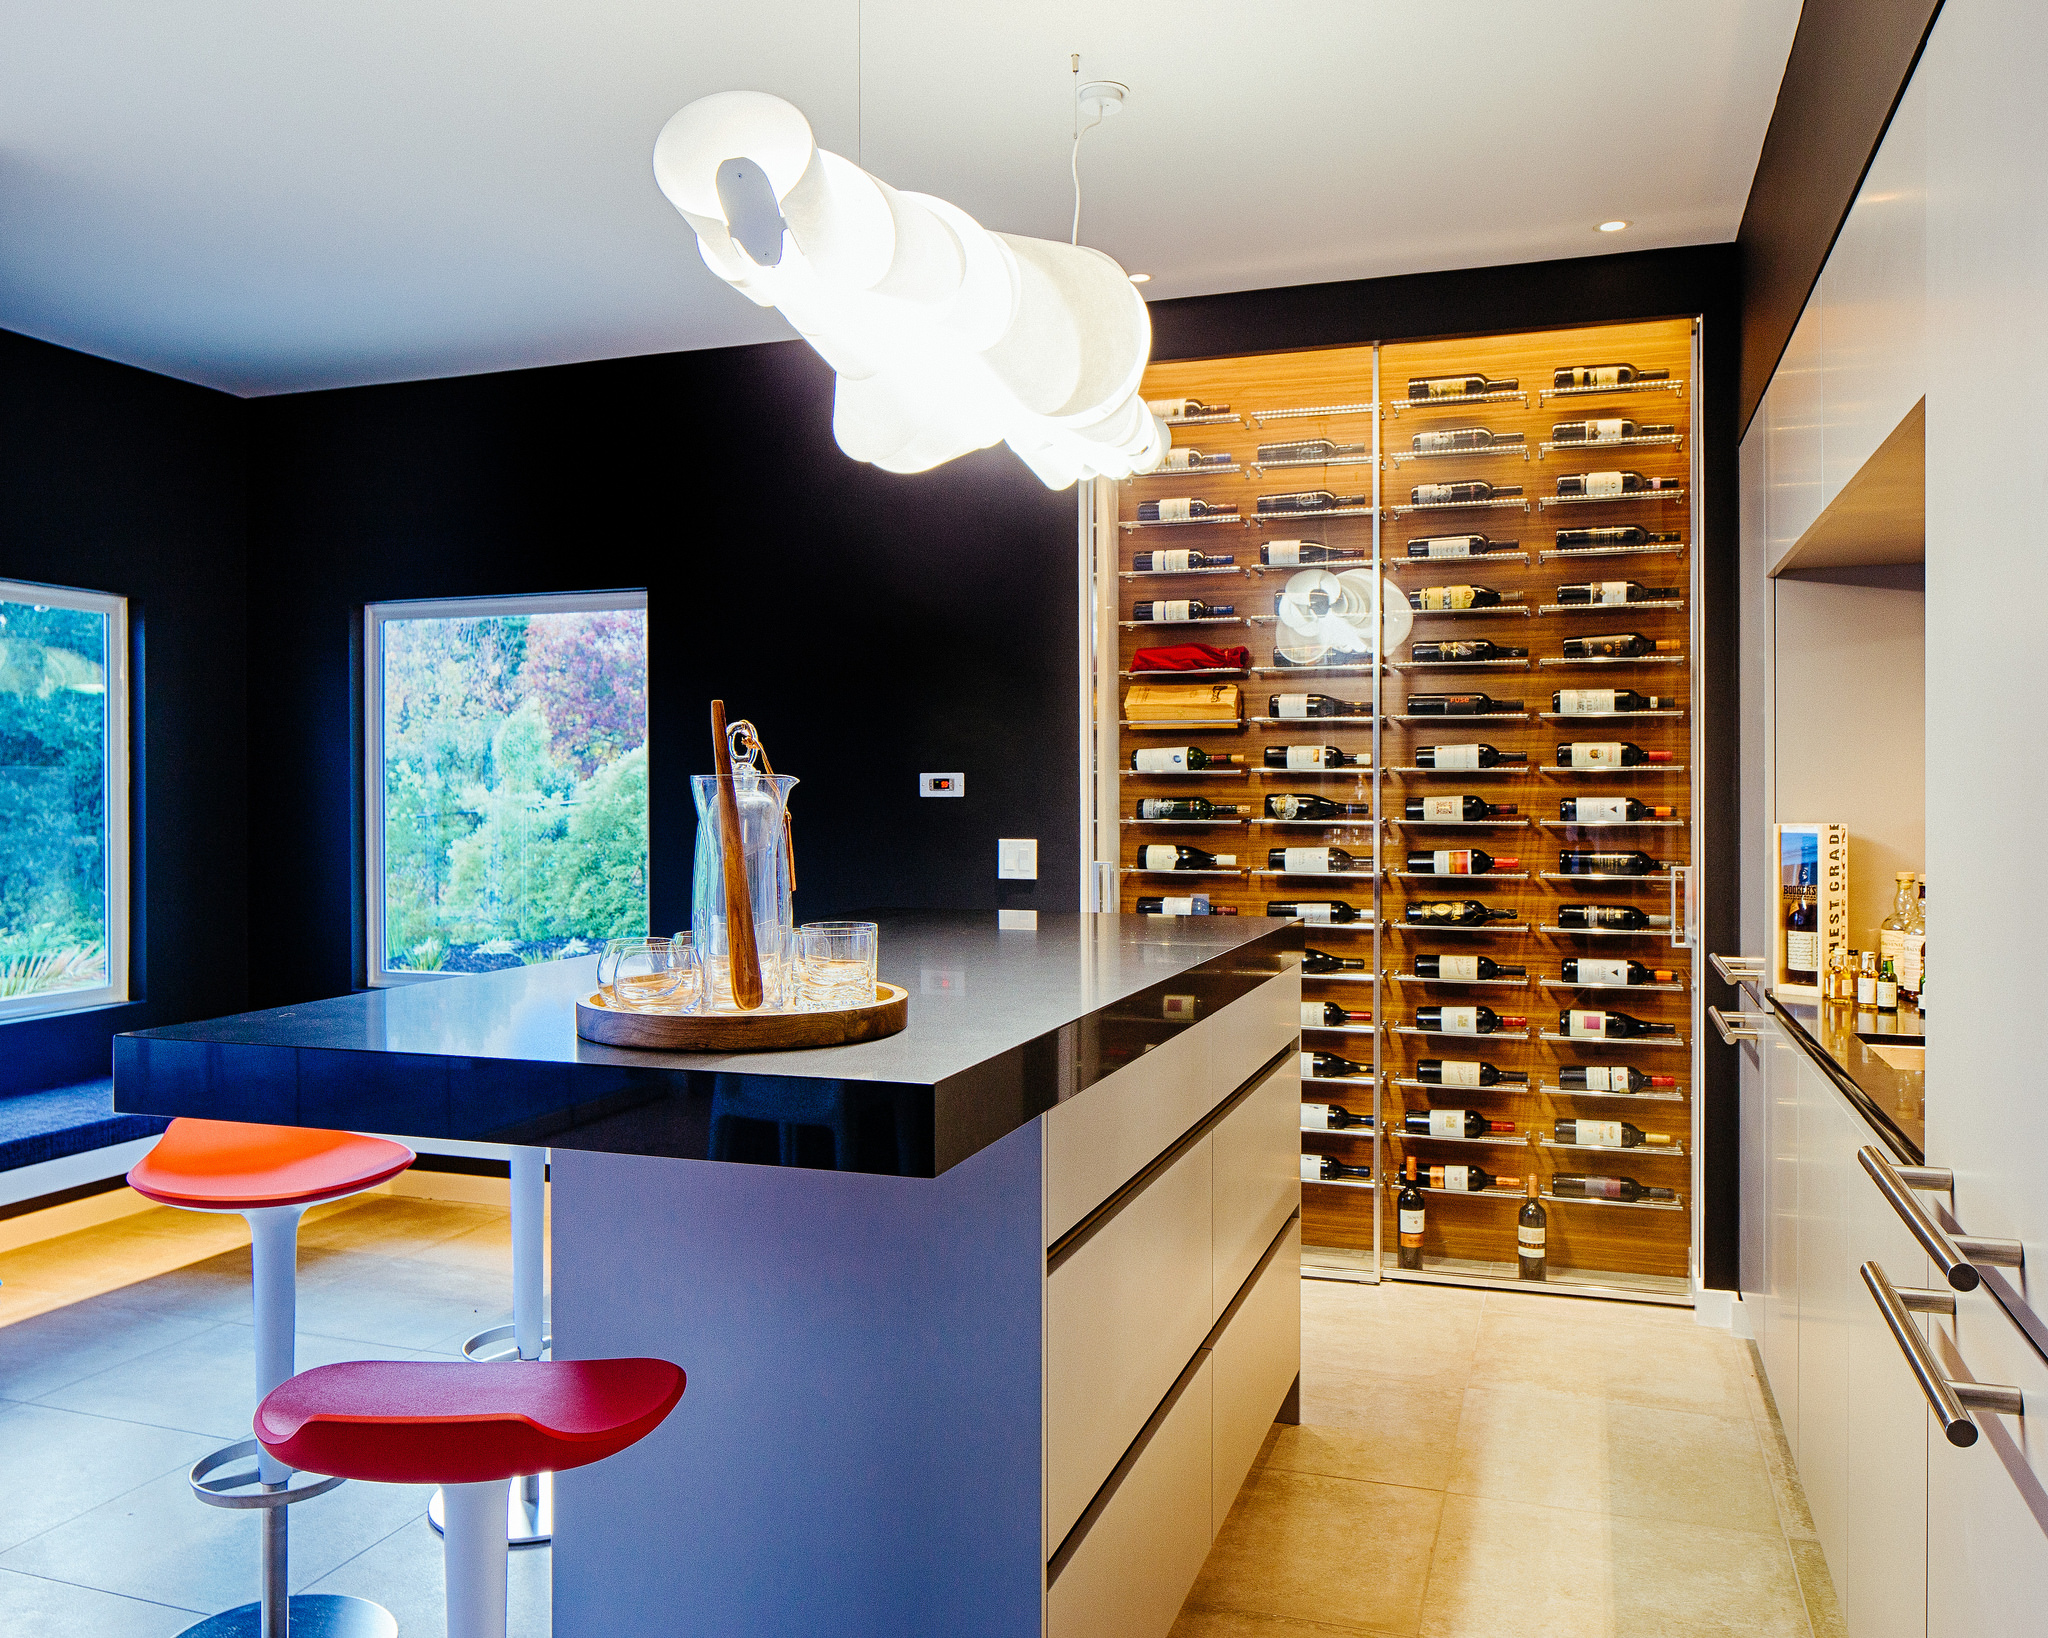 Kitchen cabinets with a grey island and a glass enclosed winecellar